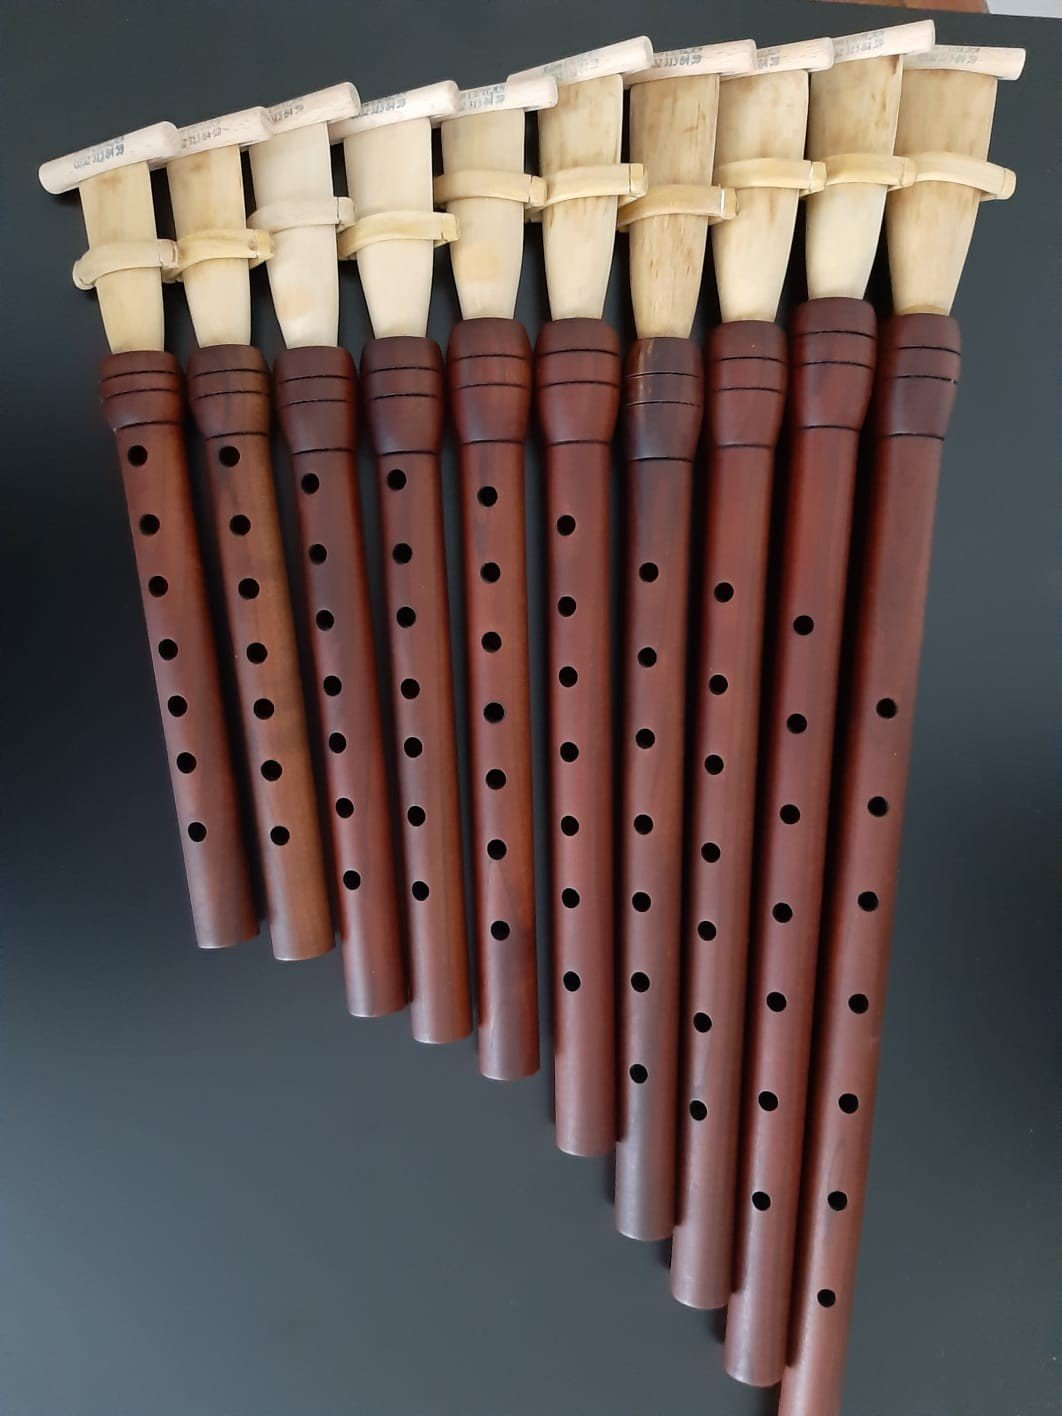 Mey/balaban is a cylindrical-bore, double-reed wind instrument about 35 centimeters long. (İHA Photo)